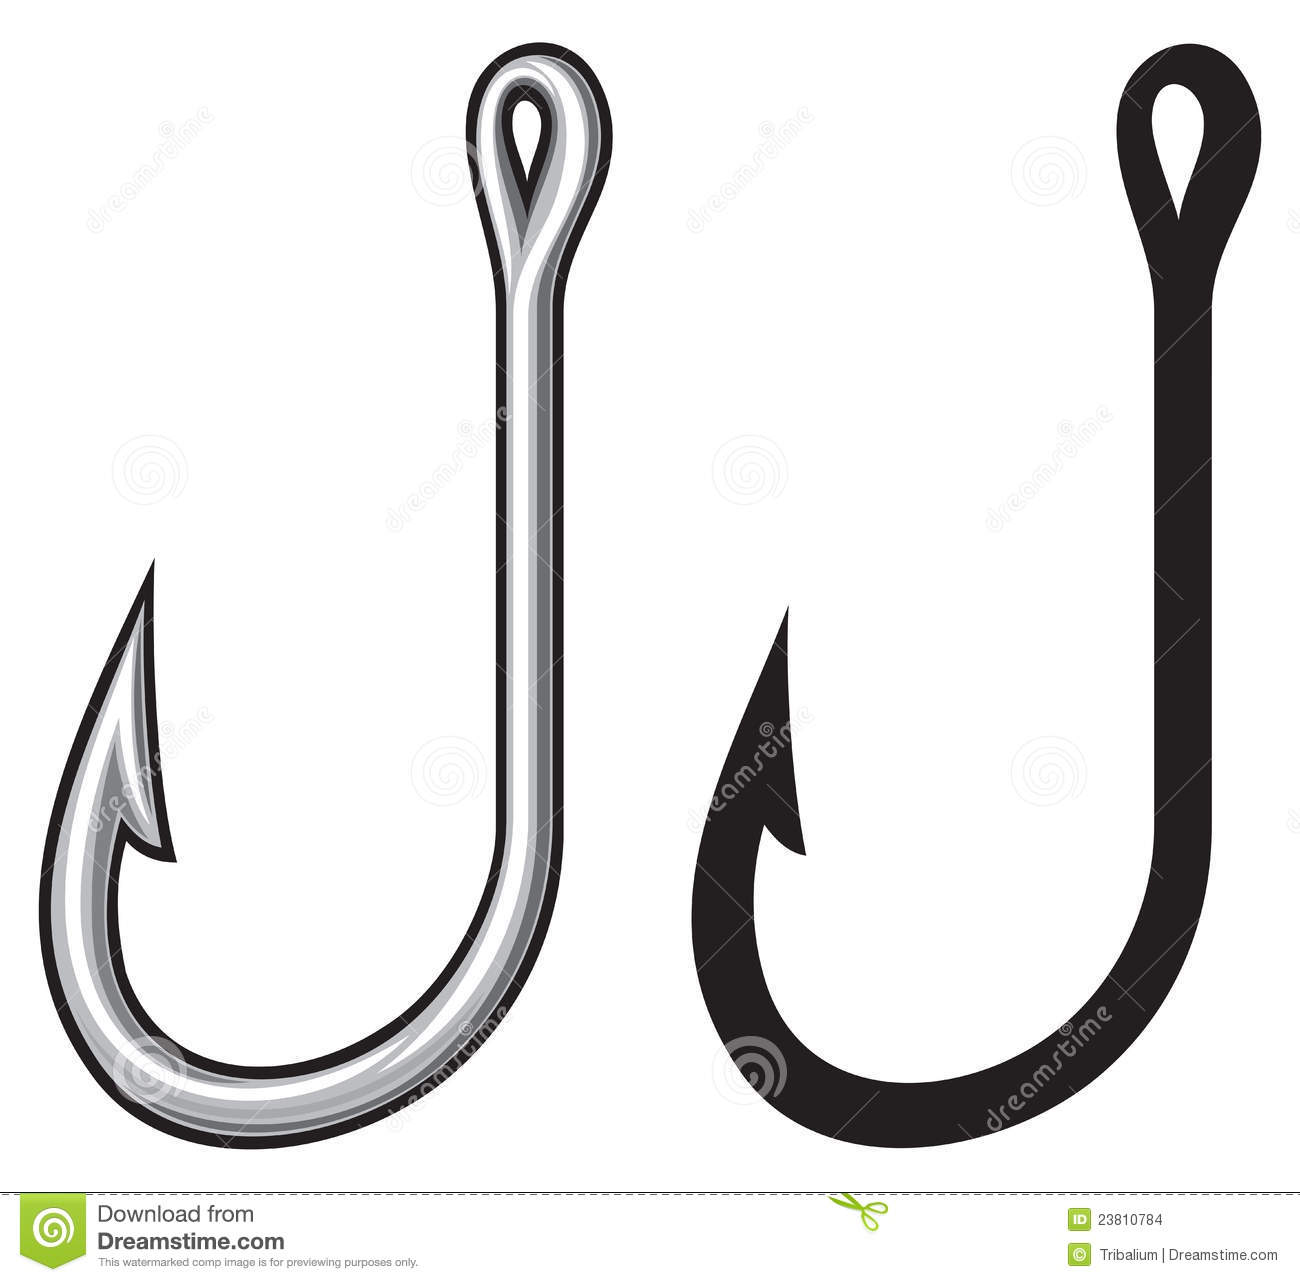 Antler clipart fish hook. Cilpart homely ideas fishing